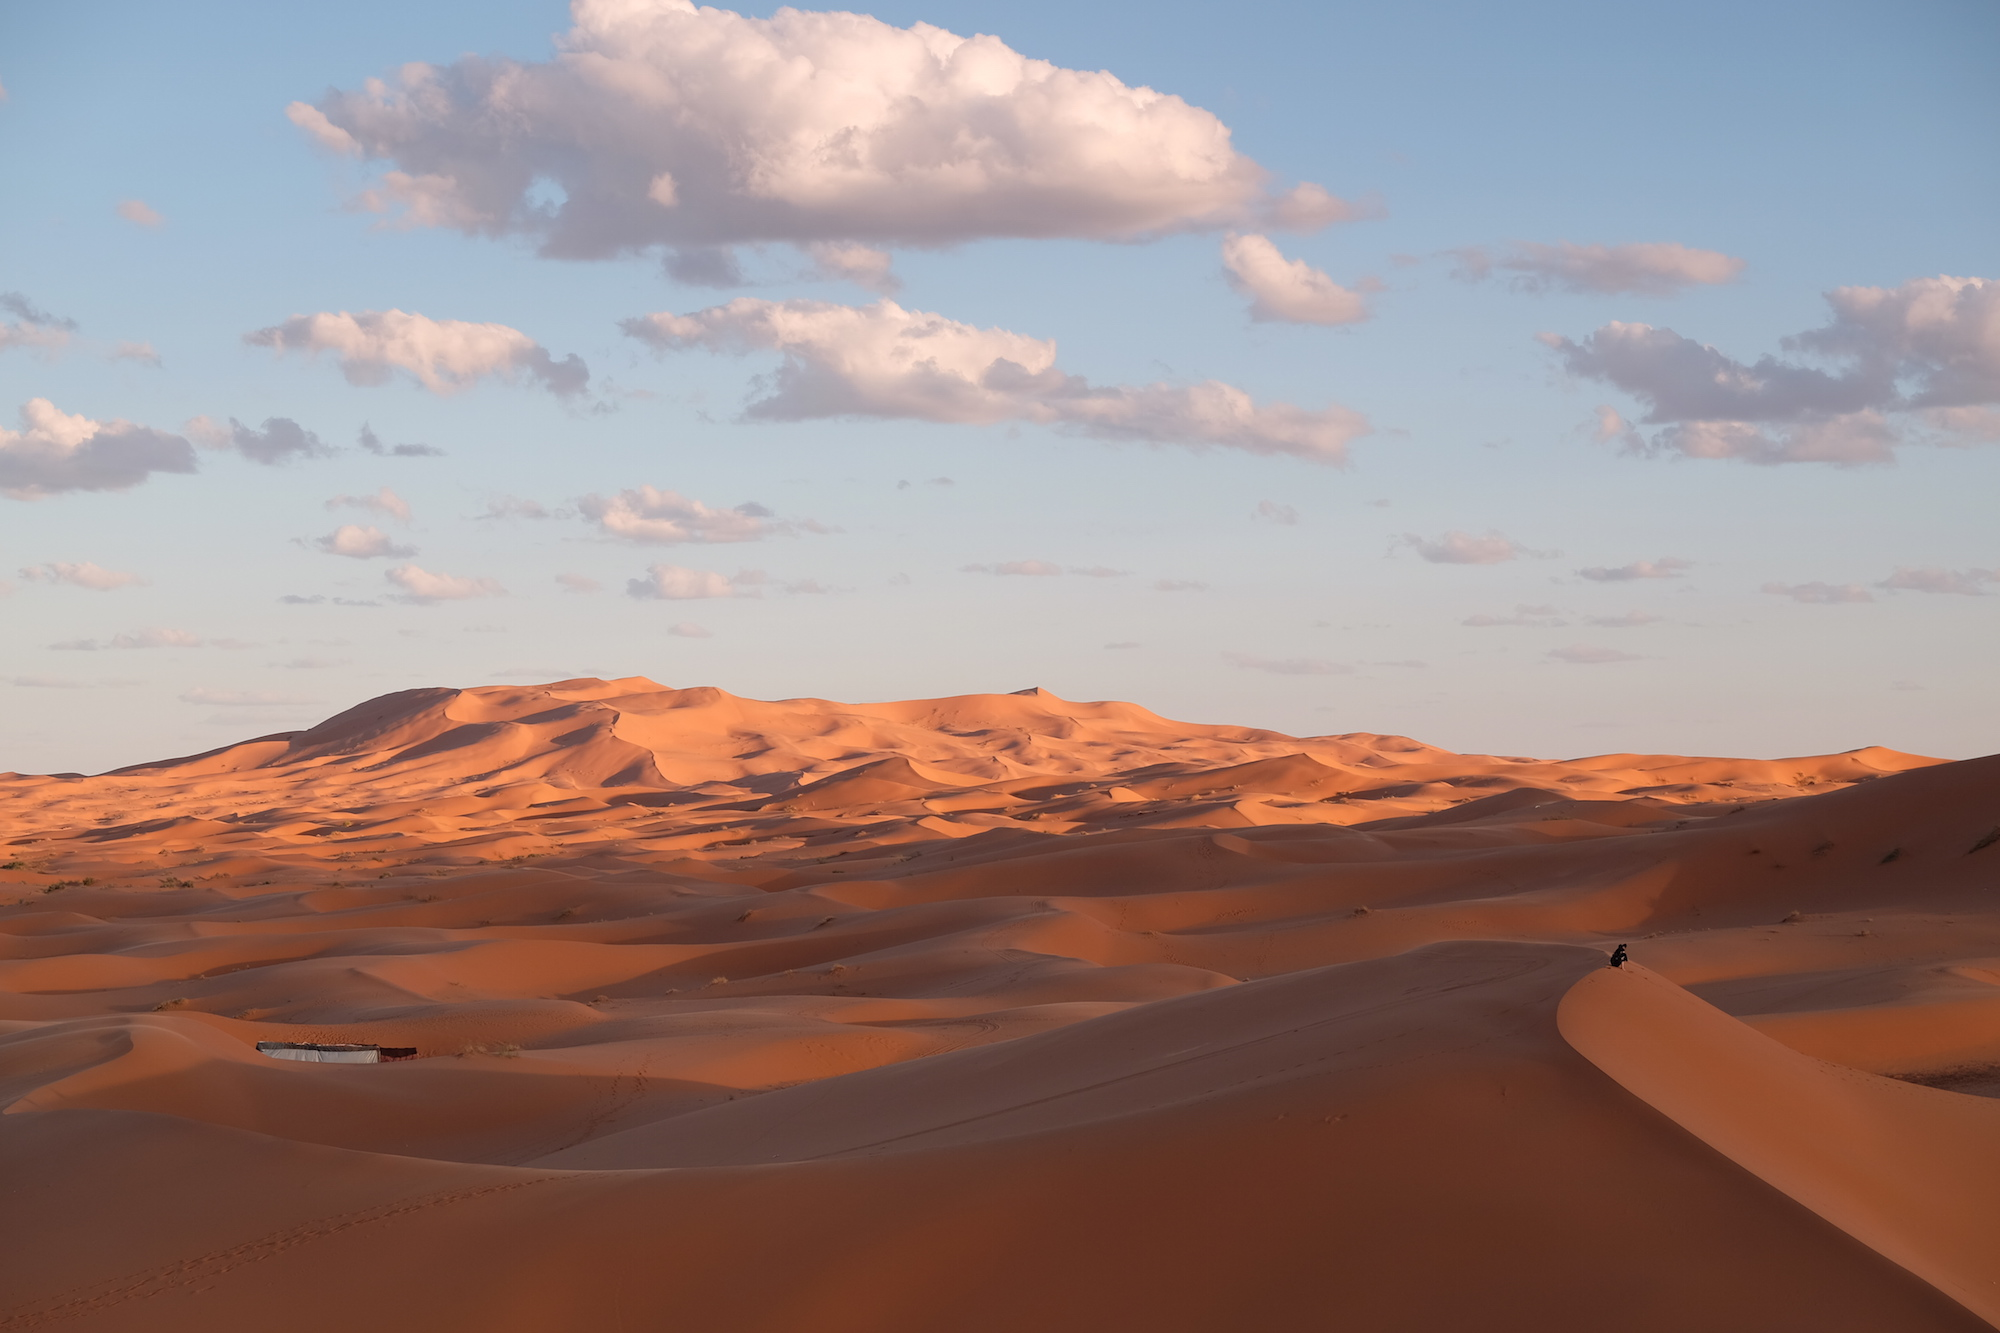 """The Sahara, meaning """"desert"""" in Arabic, is the largest hot-climate desert in the world."""